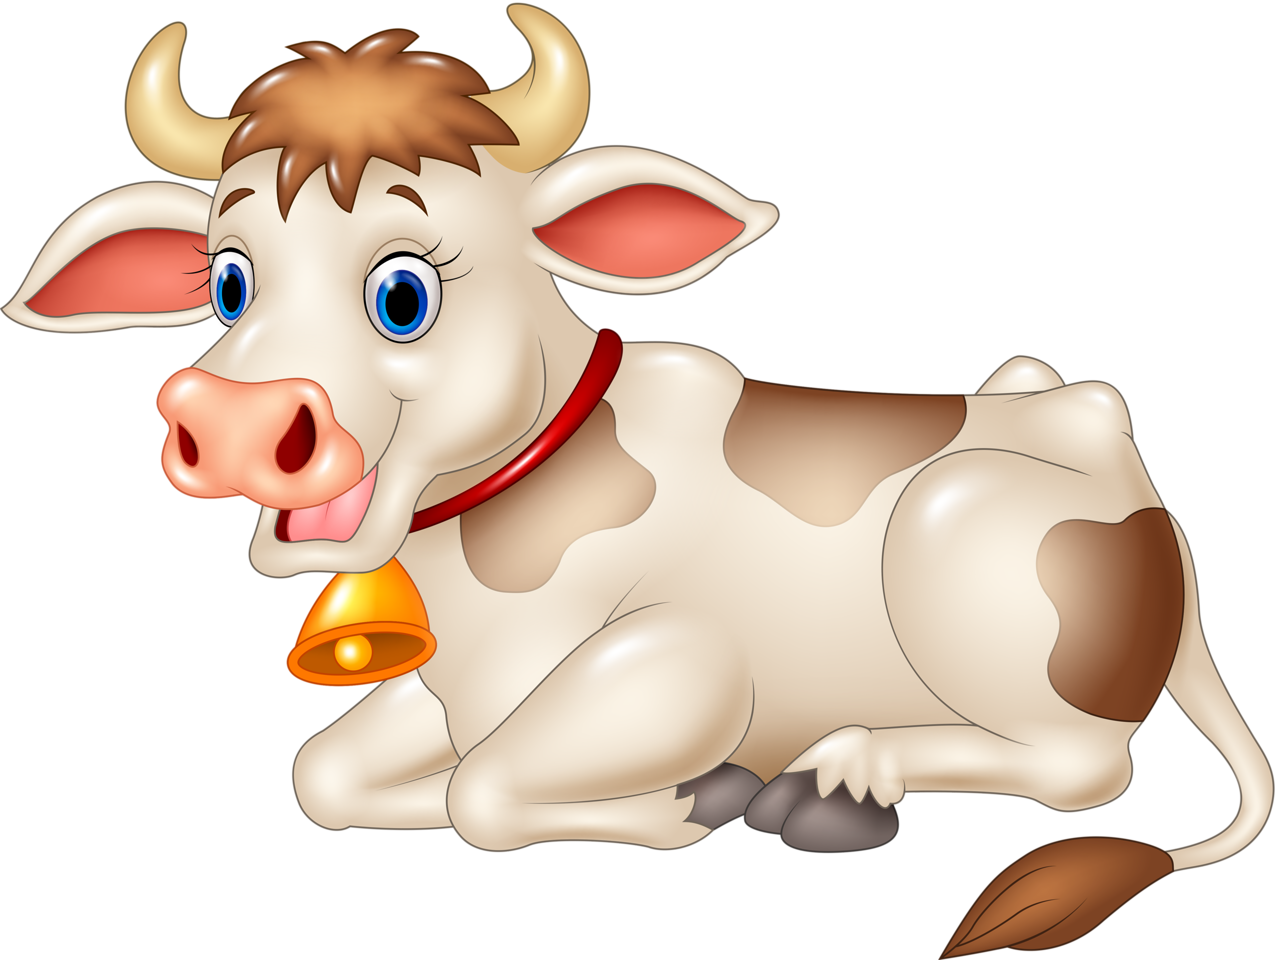 Cow vector png. Funny cartoon animals pinterest